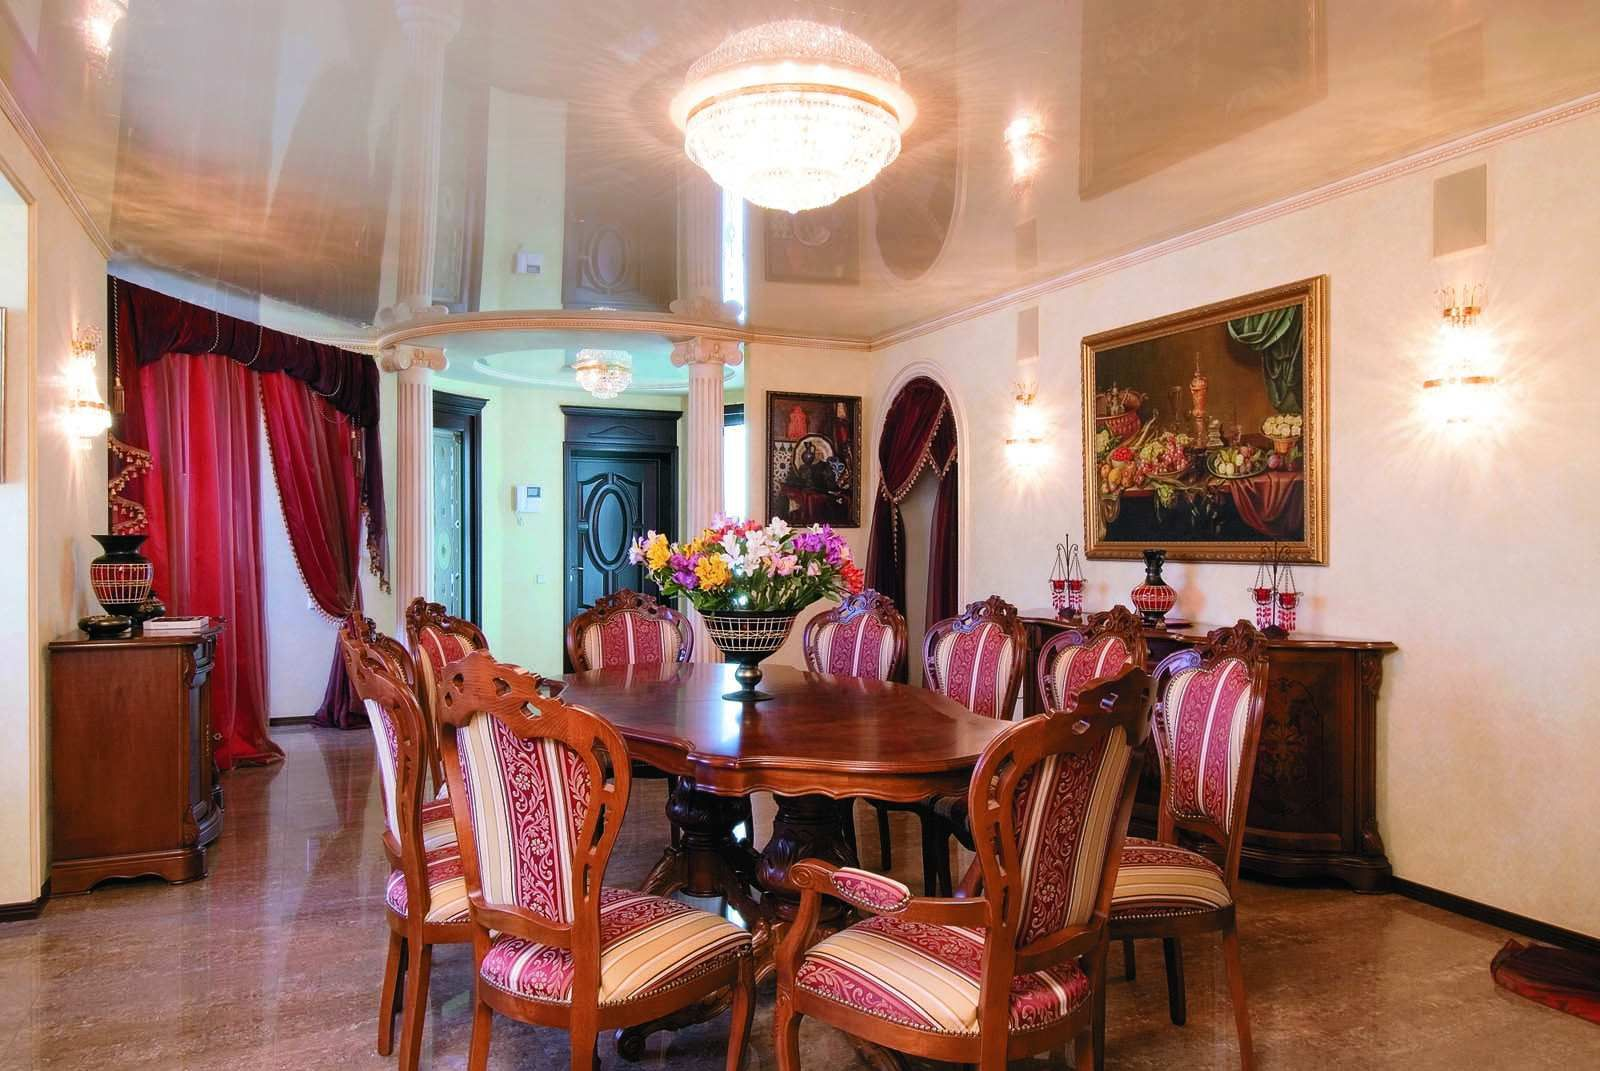 Sharp Royal Look Dining Room Decorations With Pink Furniture